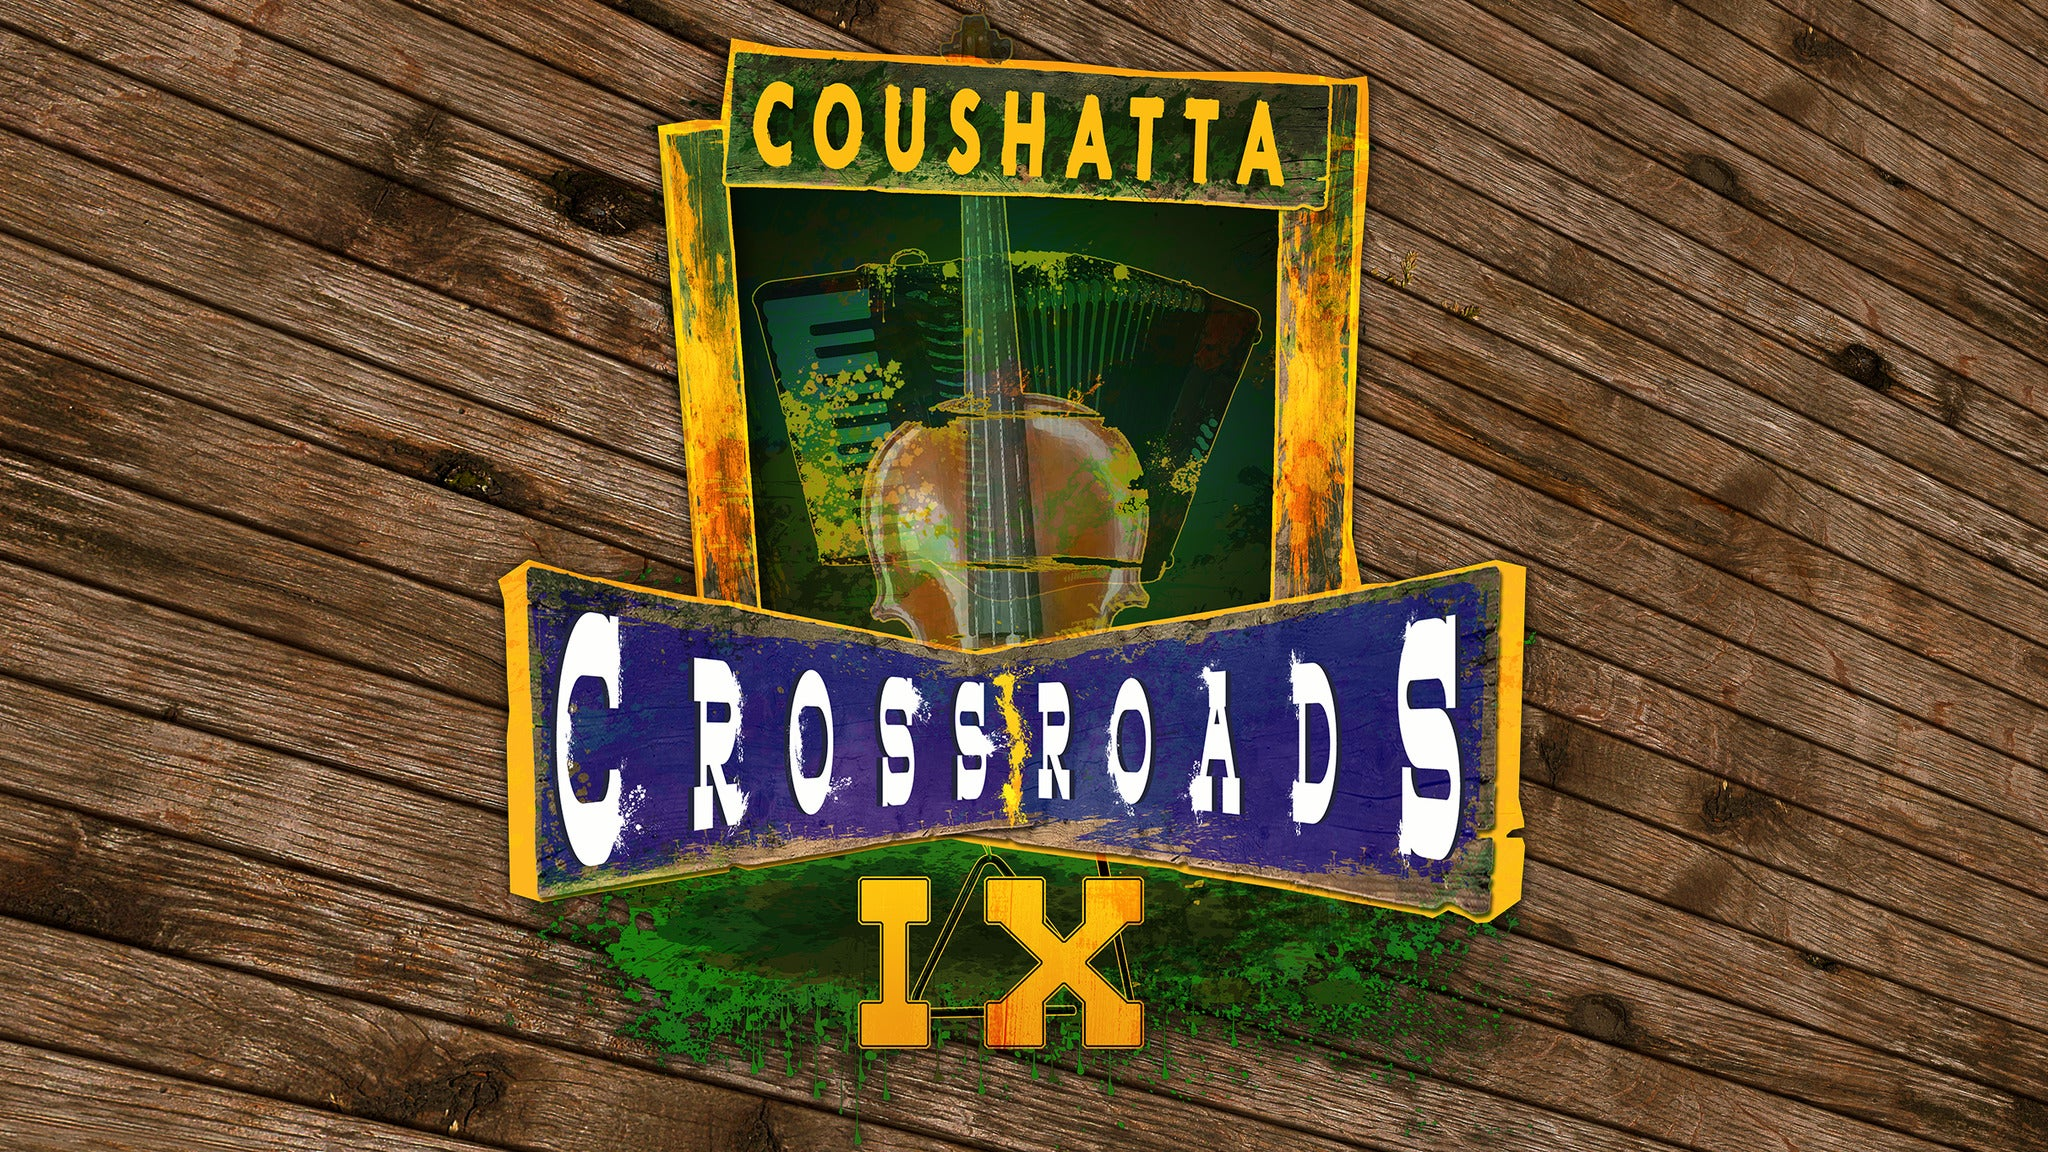 Coushatta Crossroads Festival at Coushatta Casino Resort